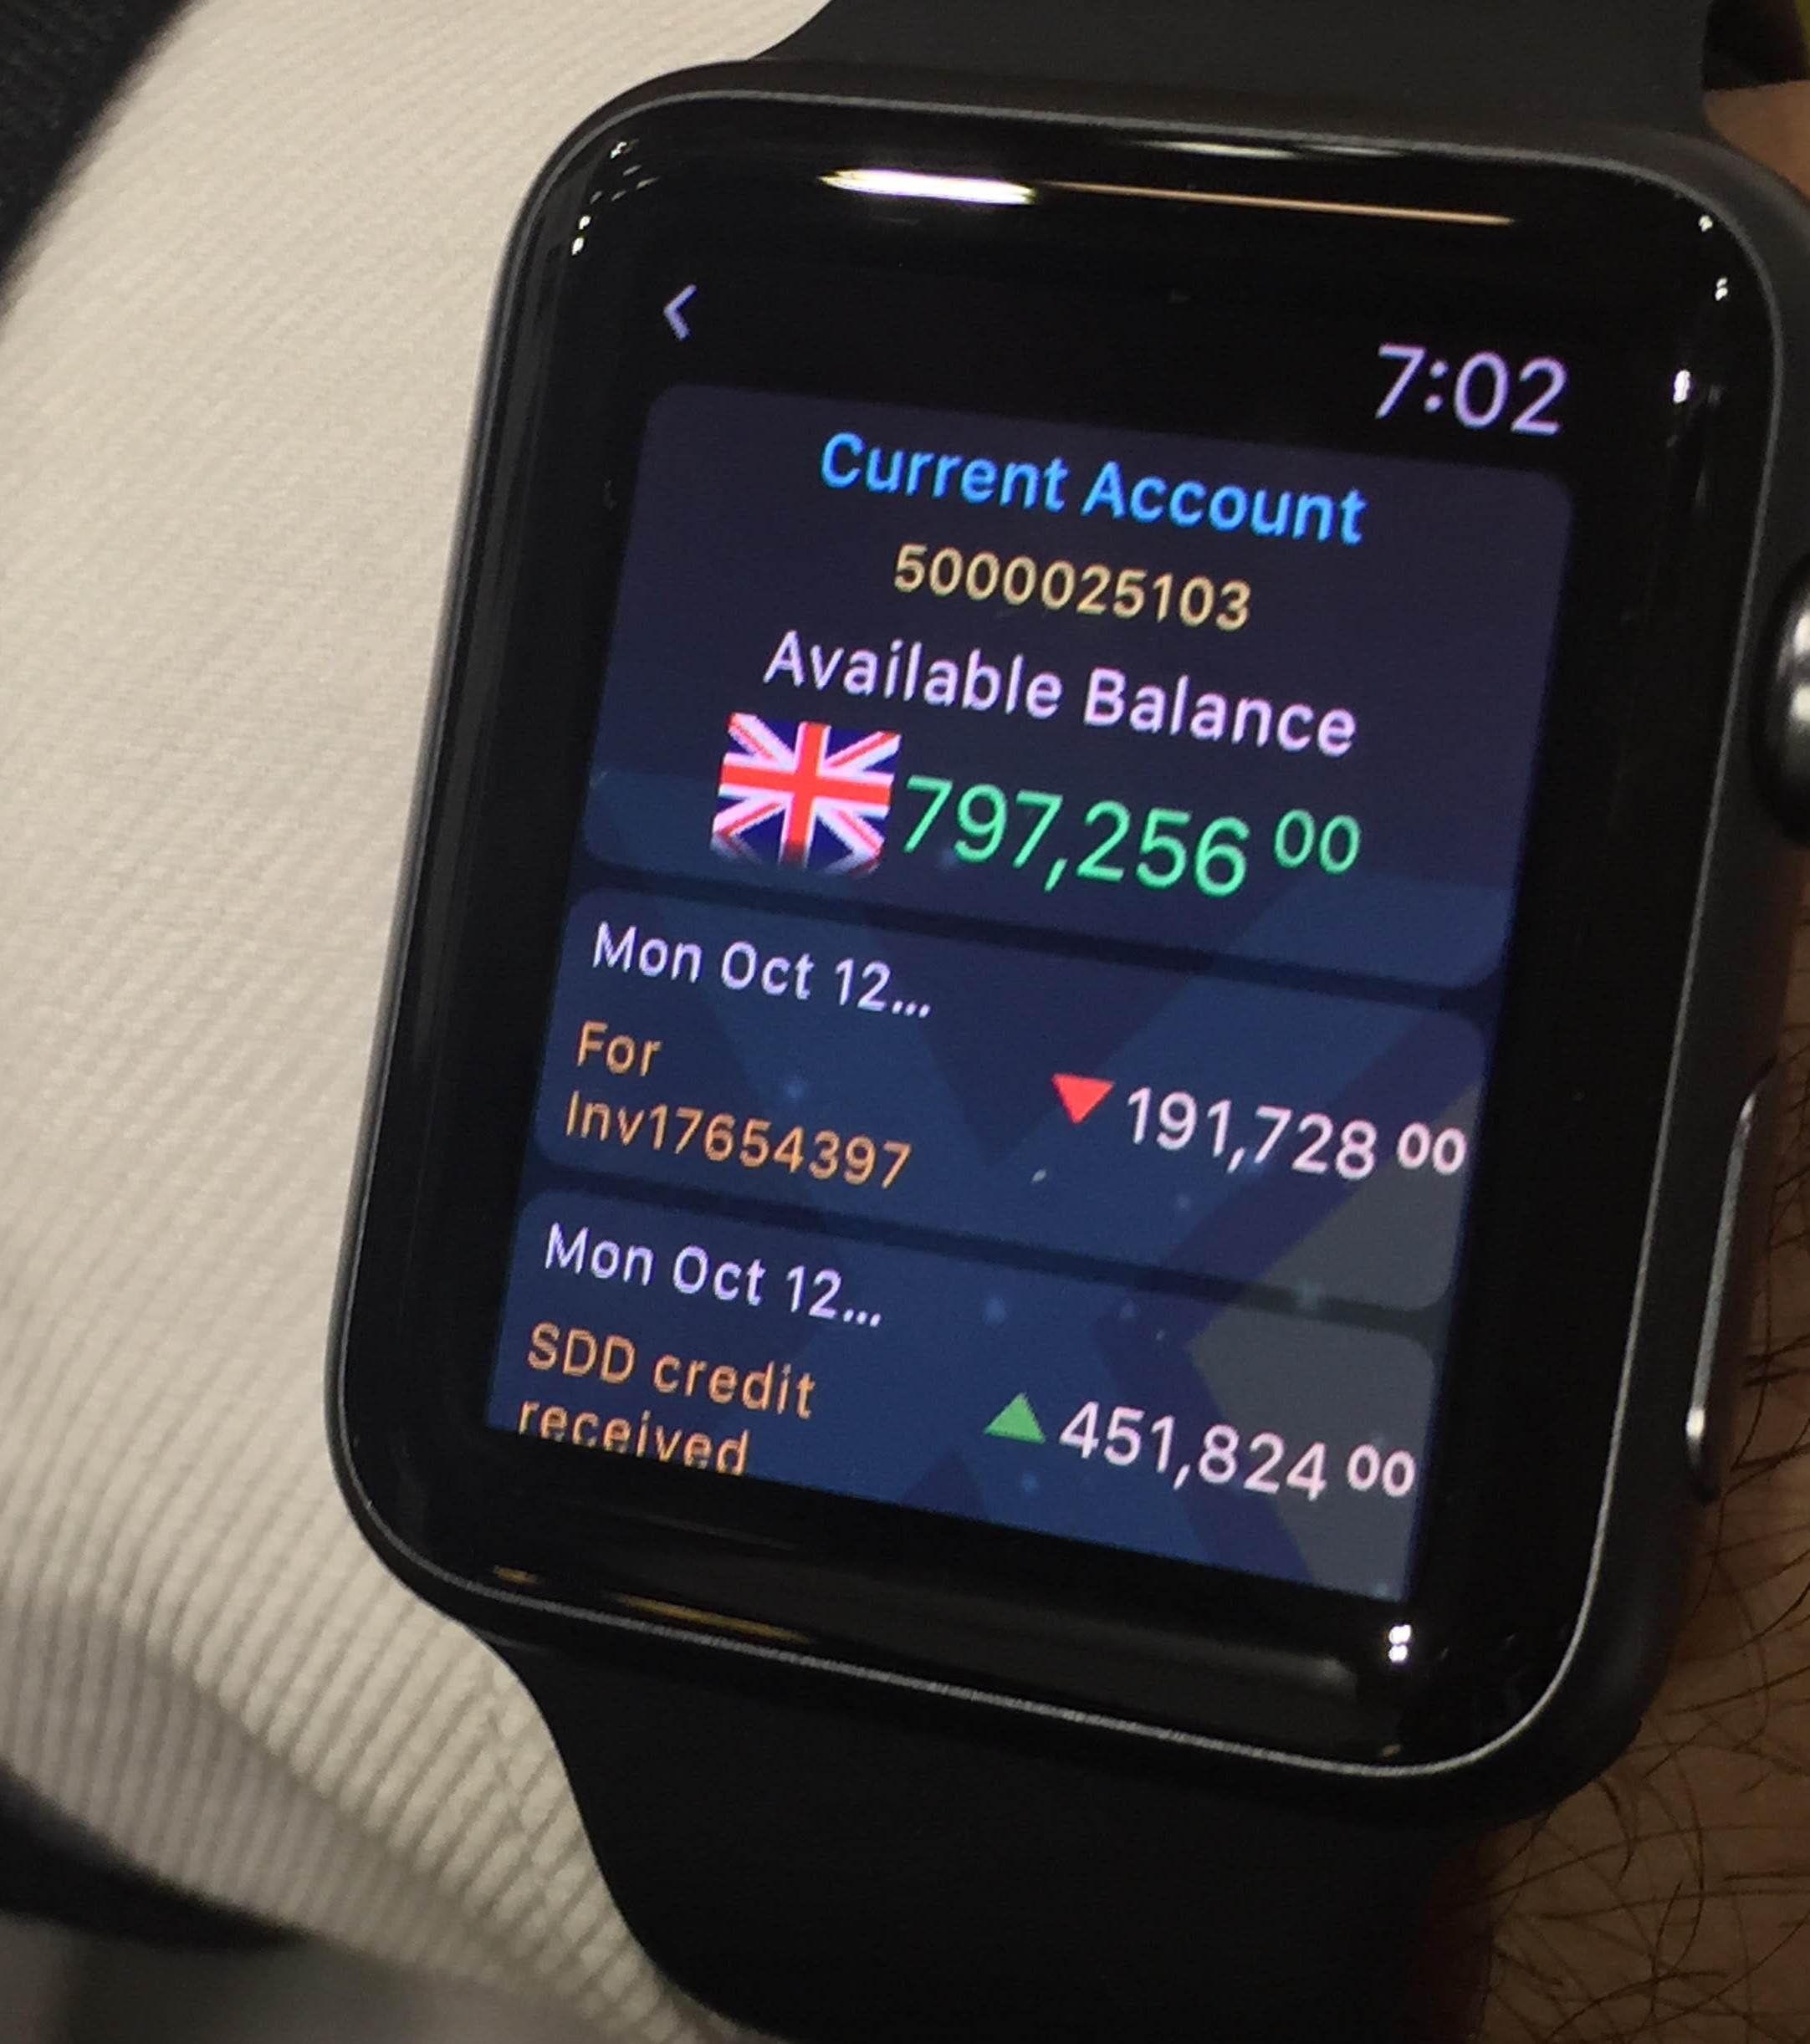 iGTB announces launch of Release 16 at SIBOS 2015, including Apple Watch support and A.I. KYC